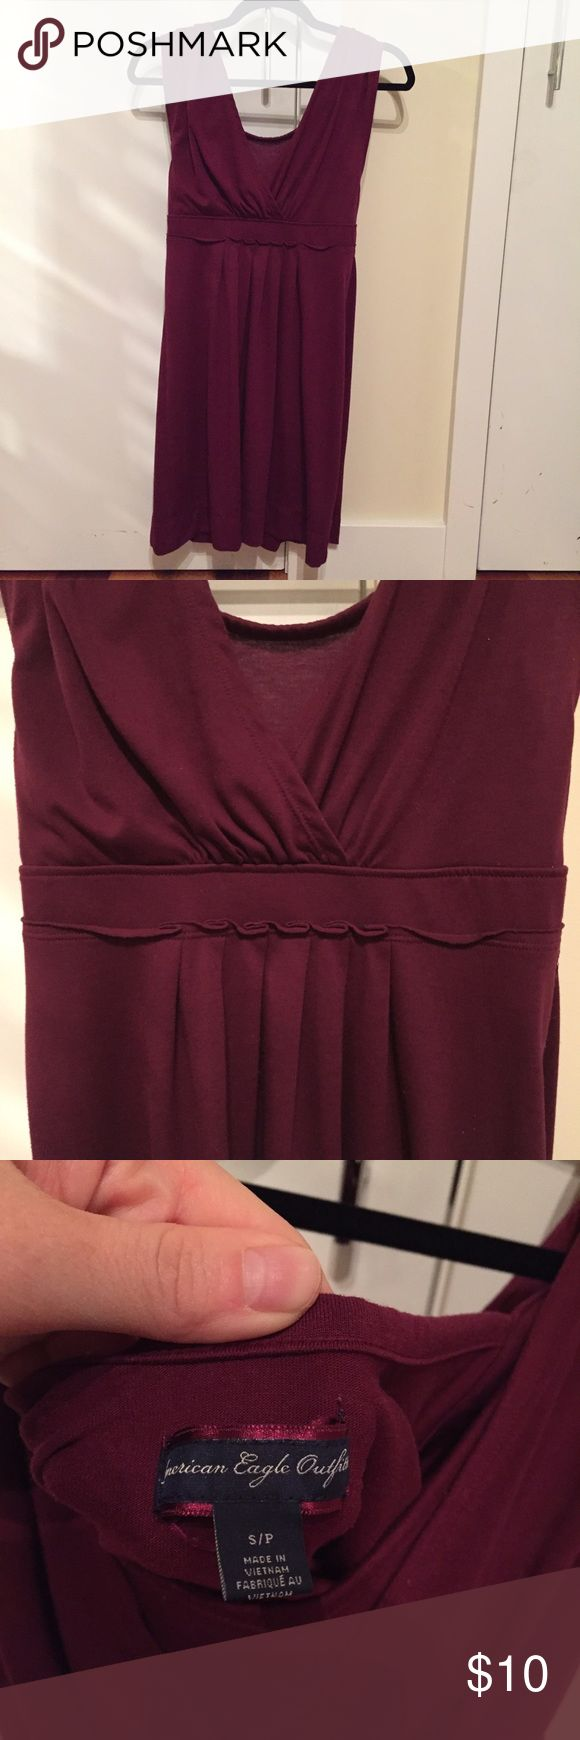 American Eagle Outfitters Maroon Midi Dress American Eagle Outfitters Maroon Midi Dress American Eagle Outfitters Dresses Midi